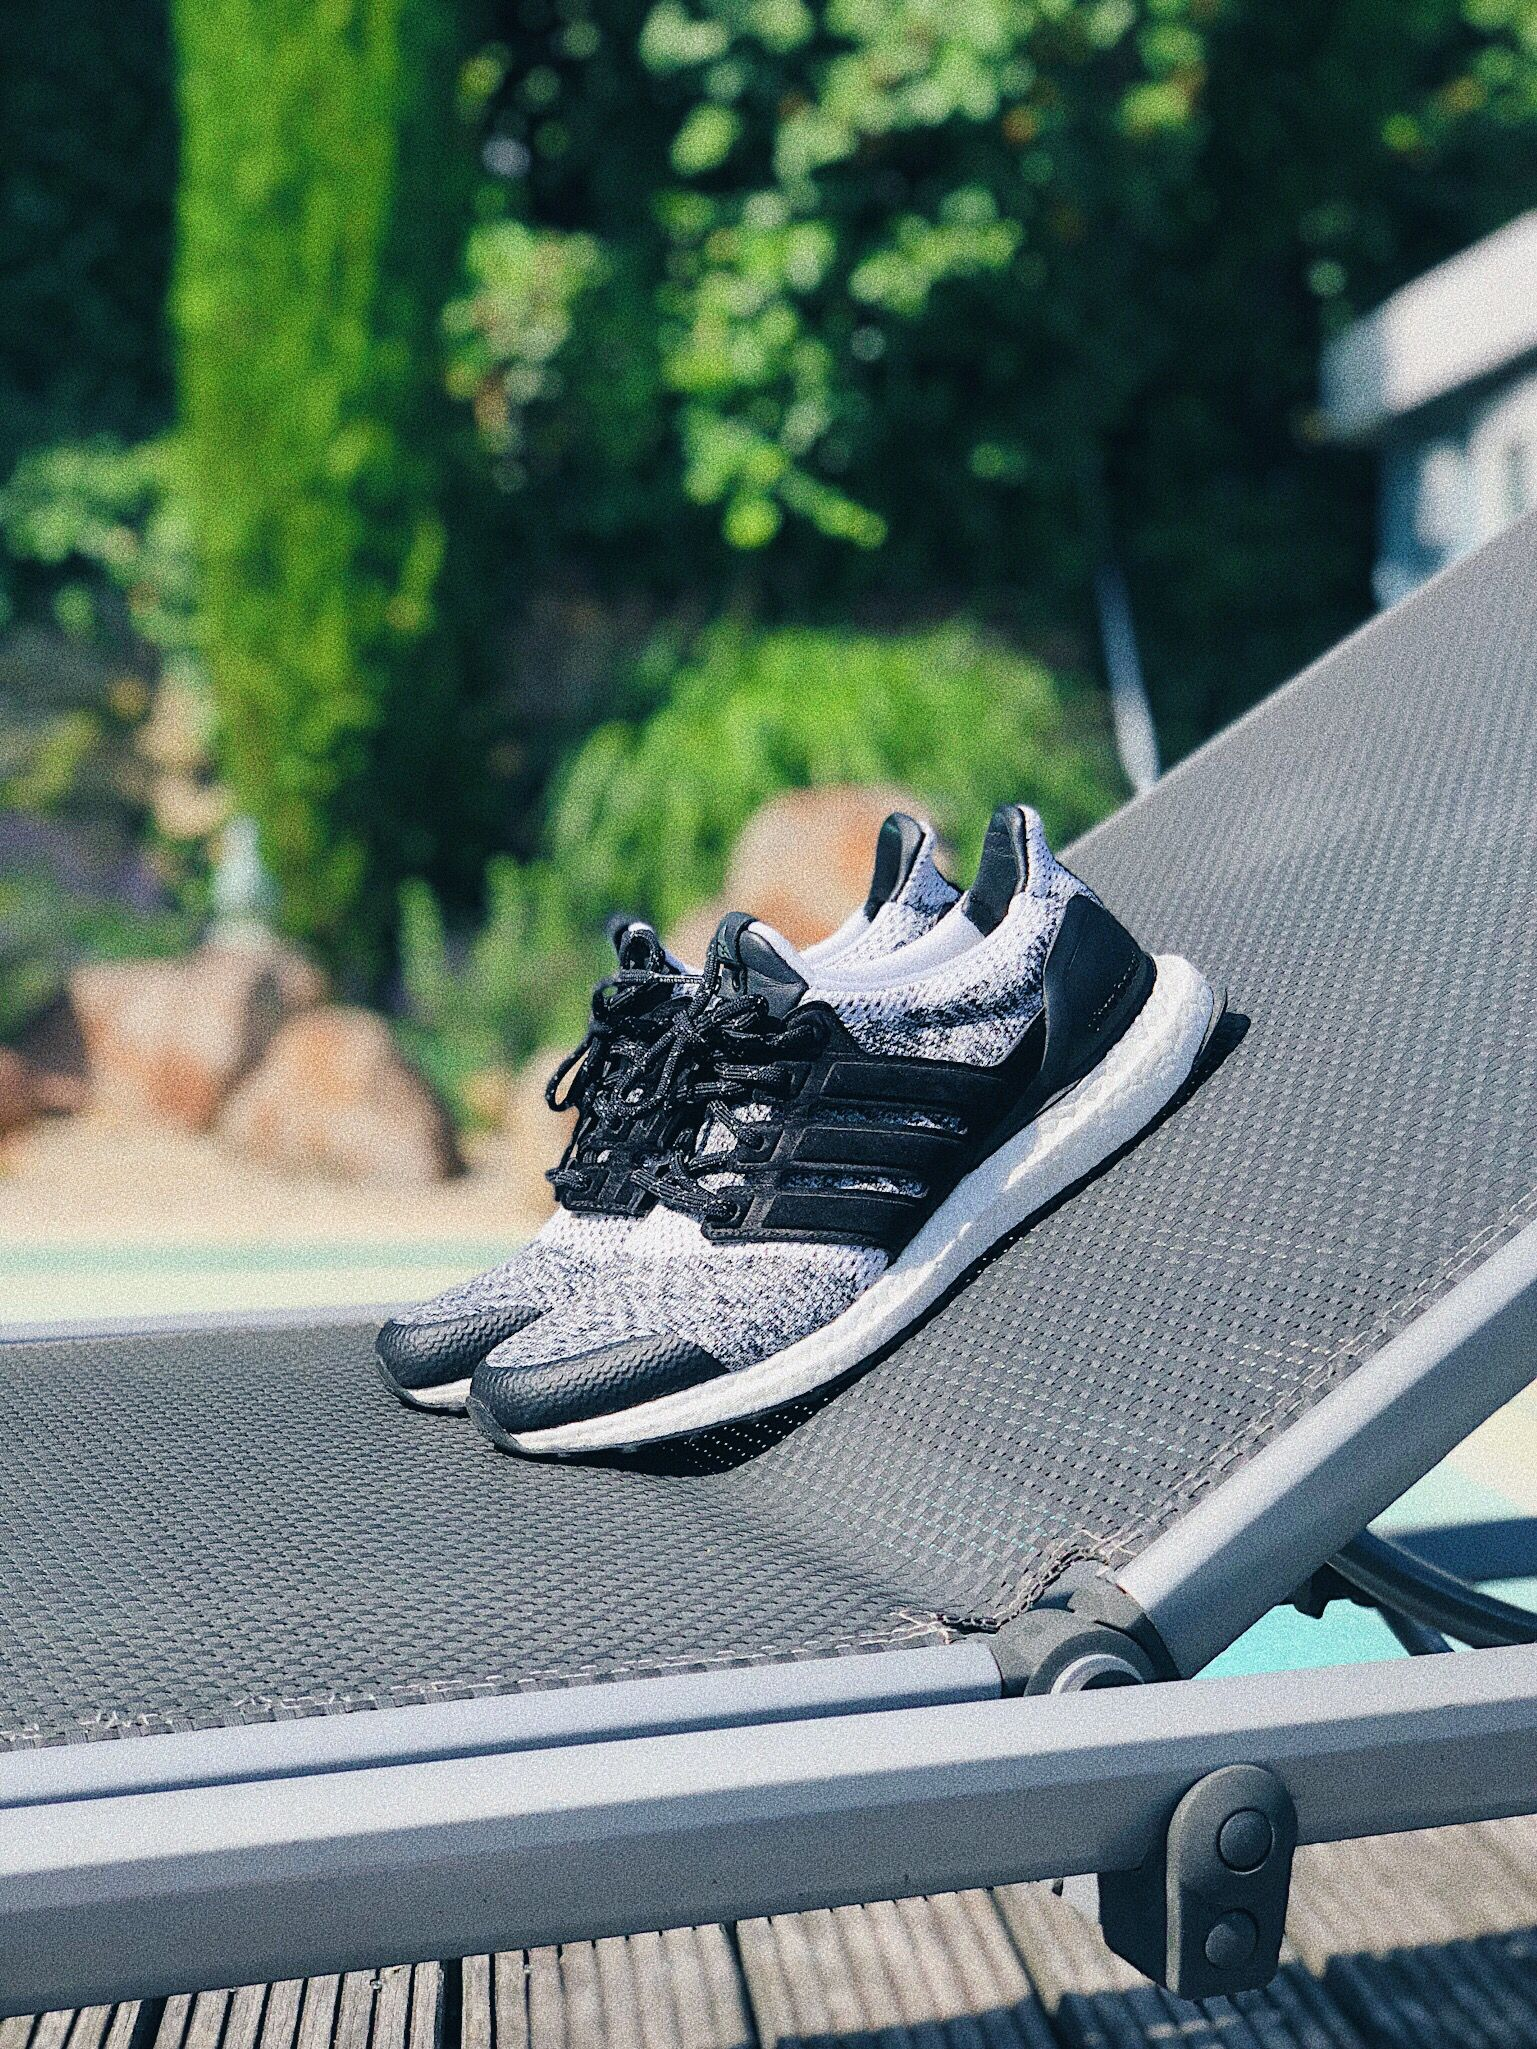 best website c1344 b3958 Ultra Boost Pool Vibes🌊🏊🏻 ♂️